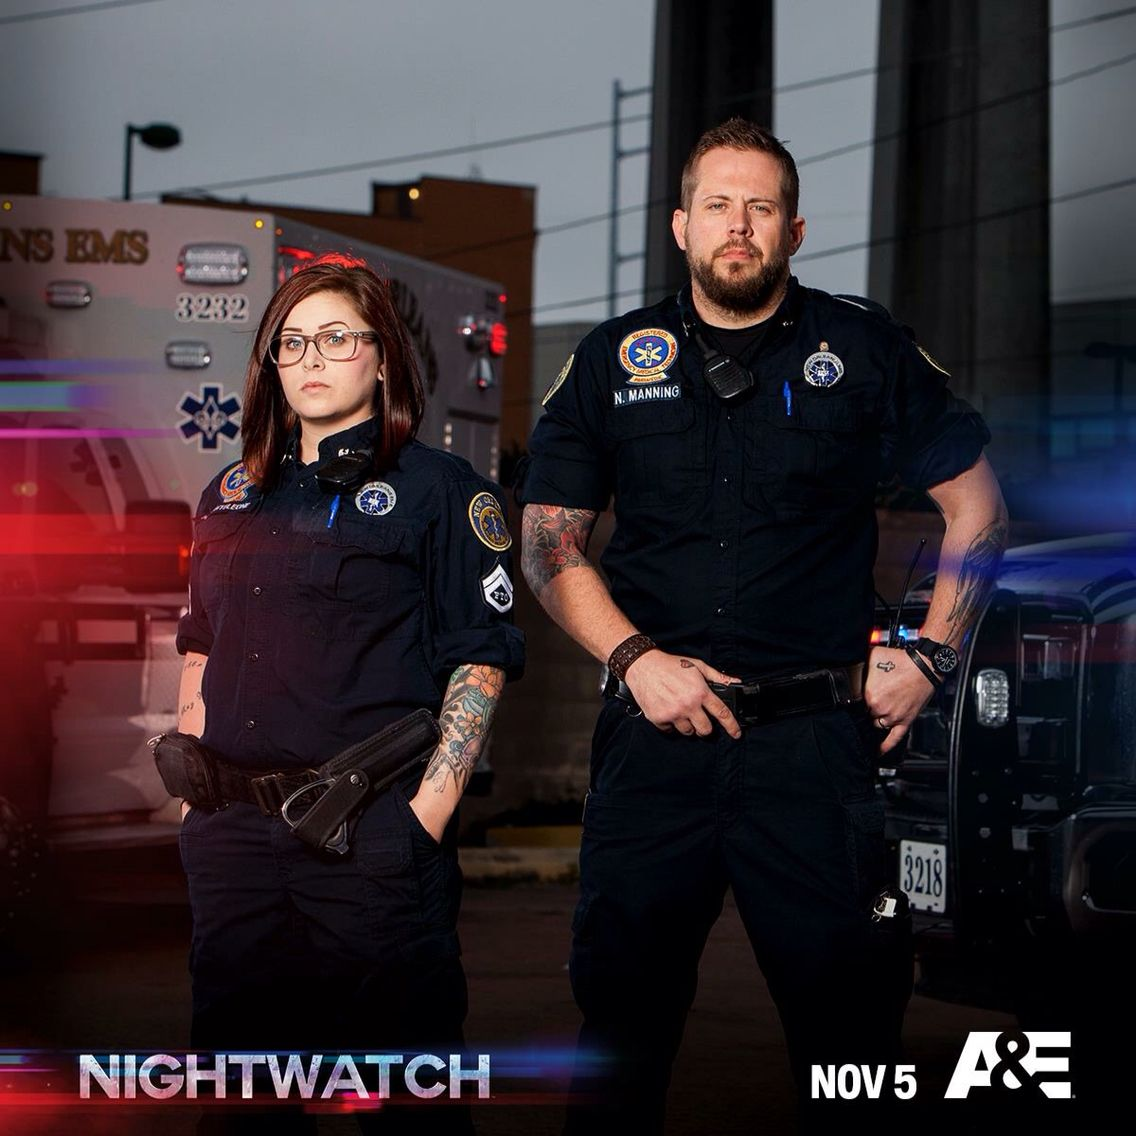 Holly and nick from nightwatch ae music tv tv shows